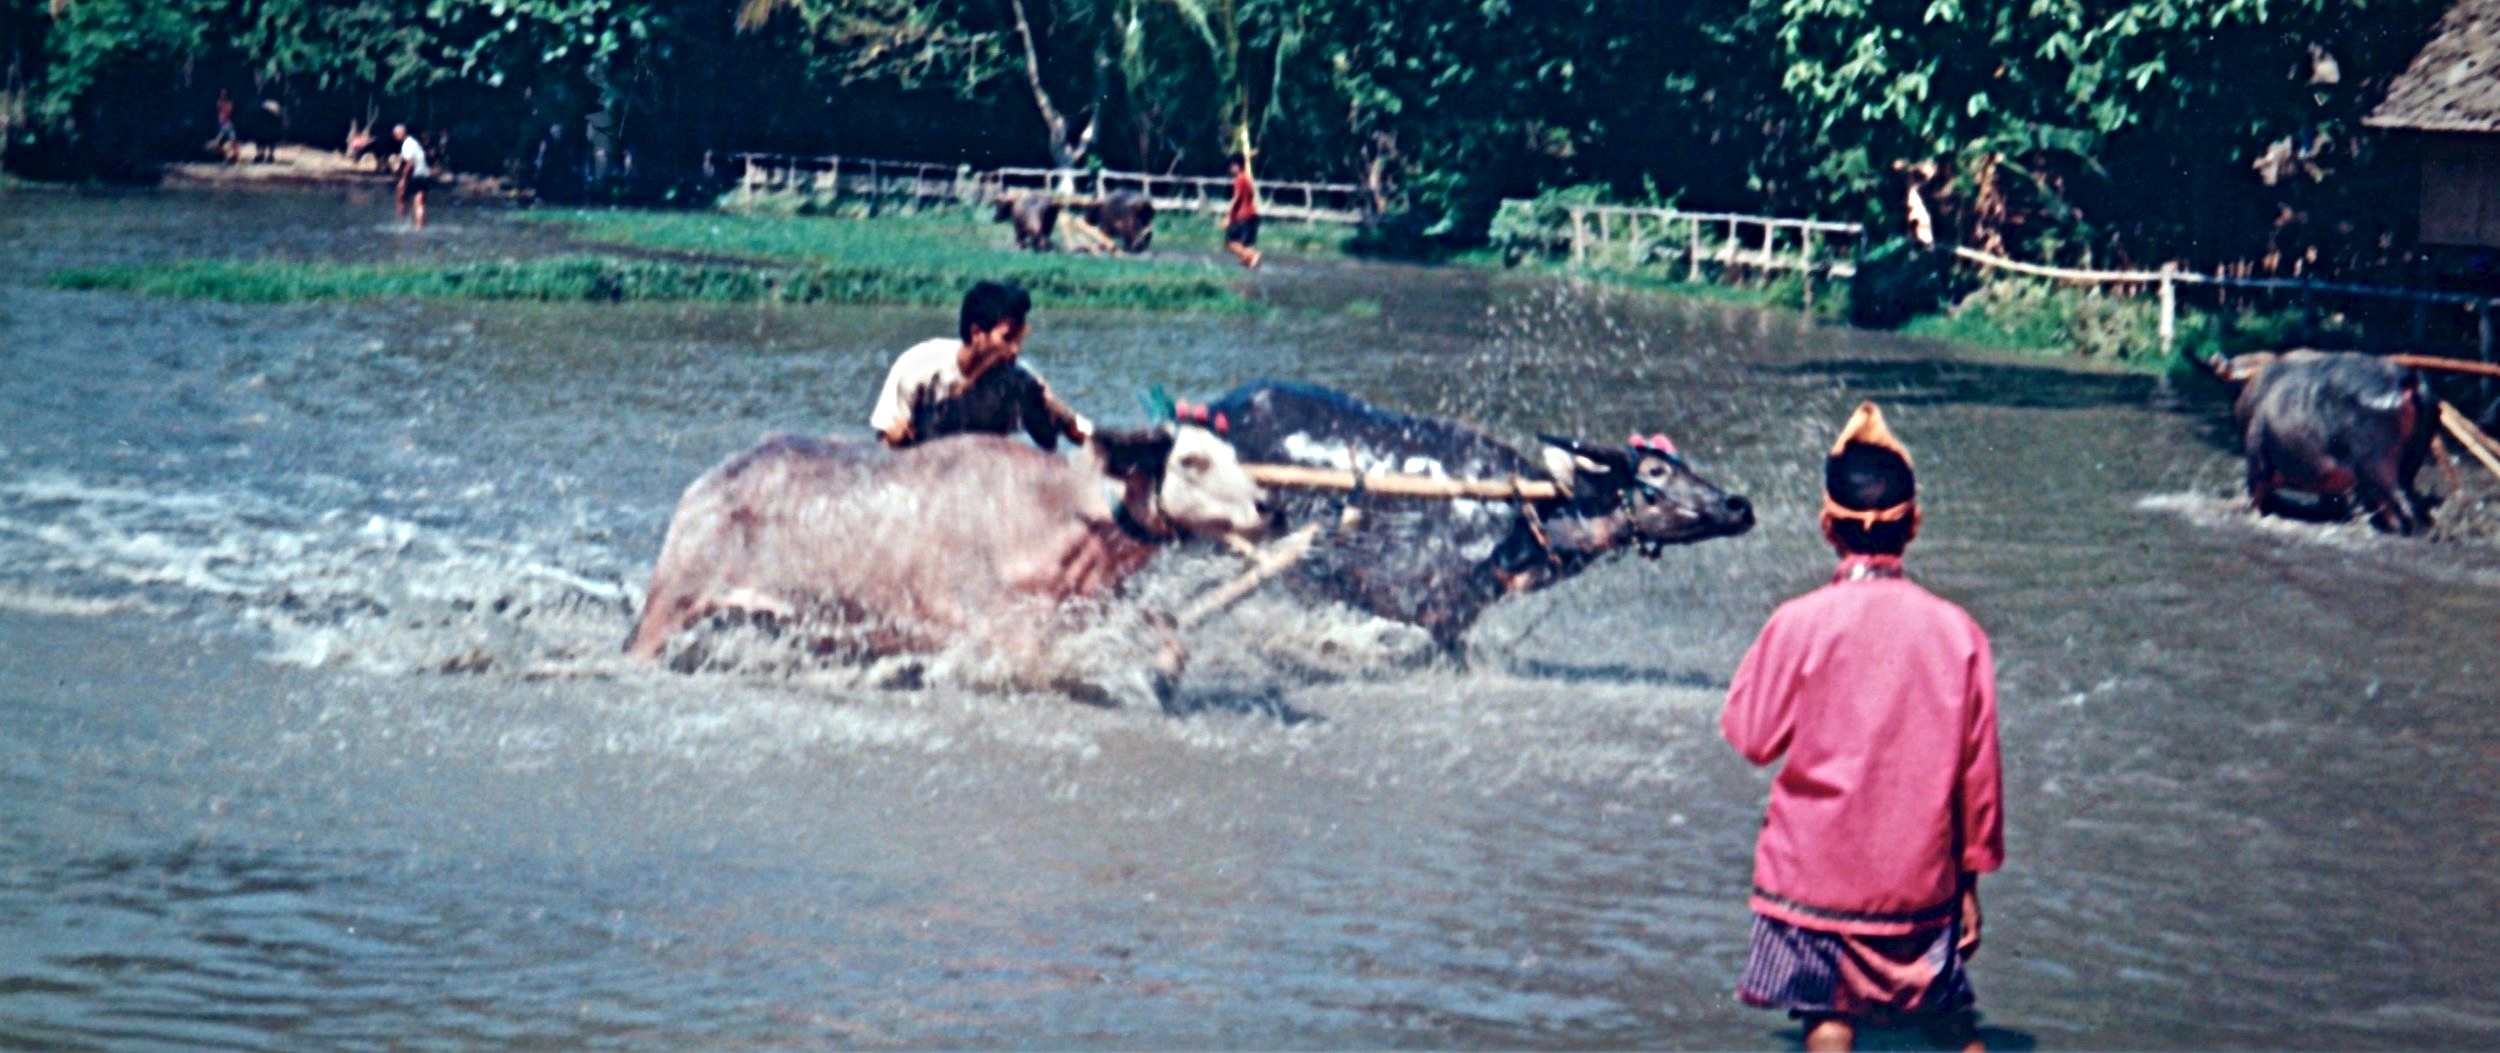 Indonesia Water Buffalo Races.jpg